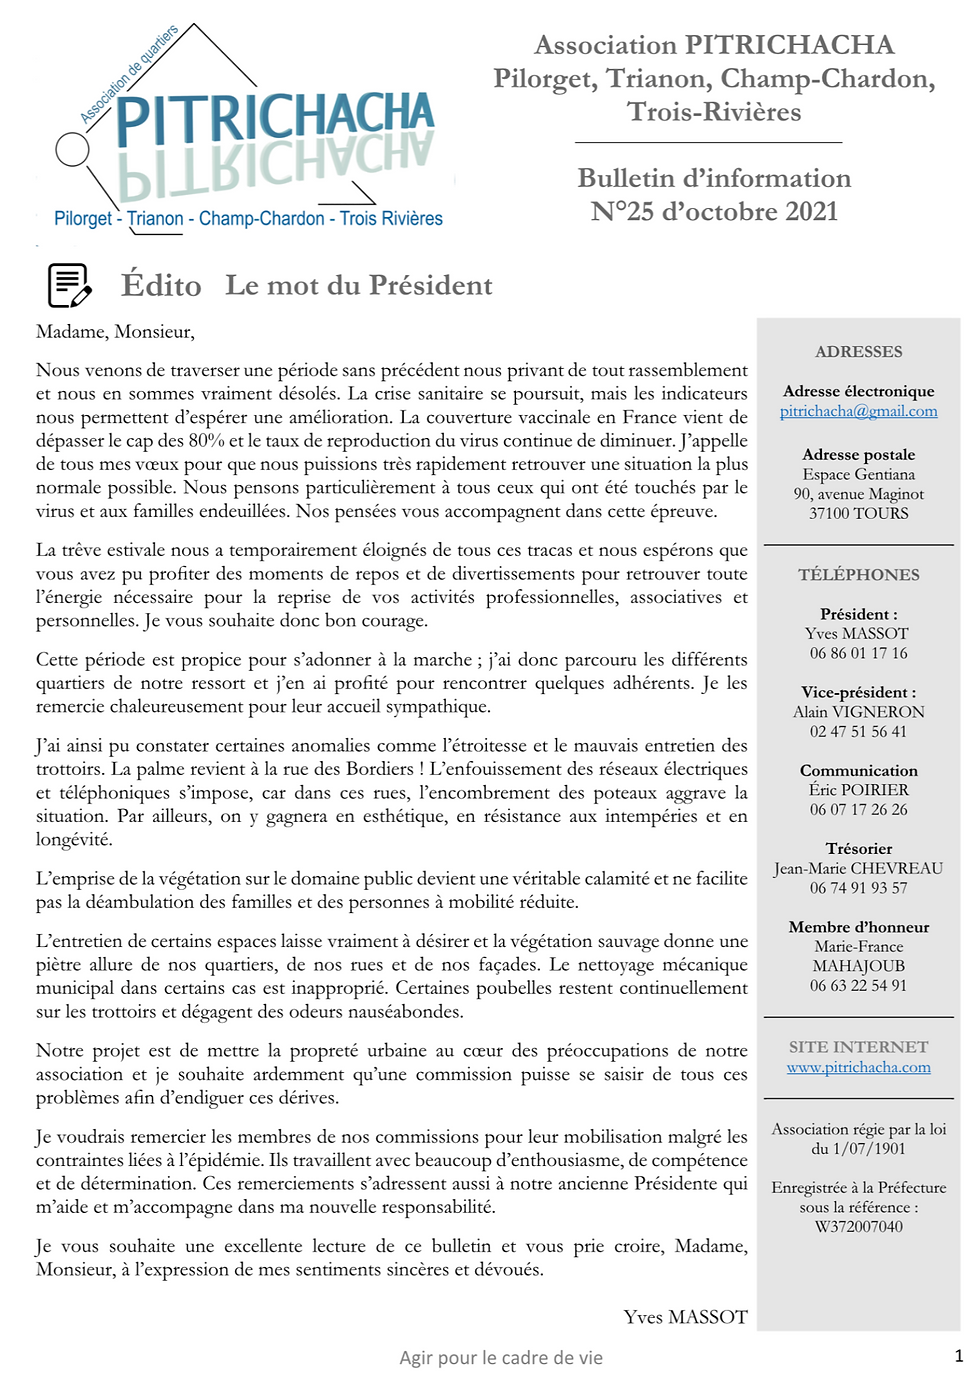 Bulletin N°25 Pitrichacha page 1.png